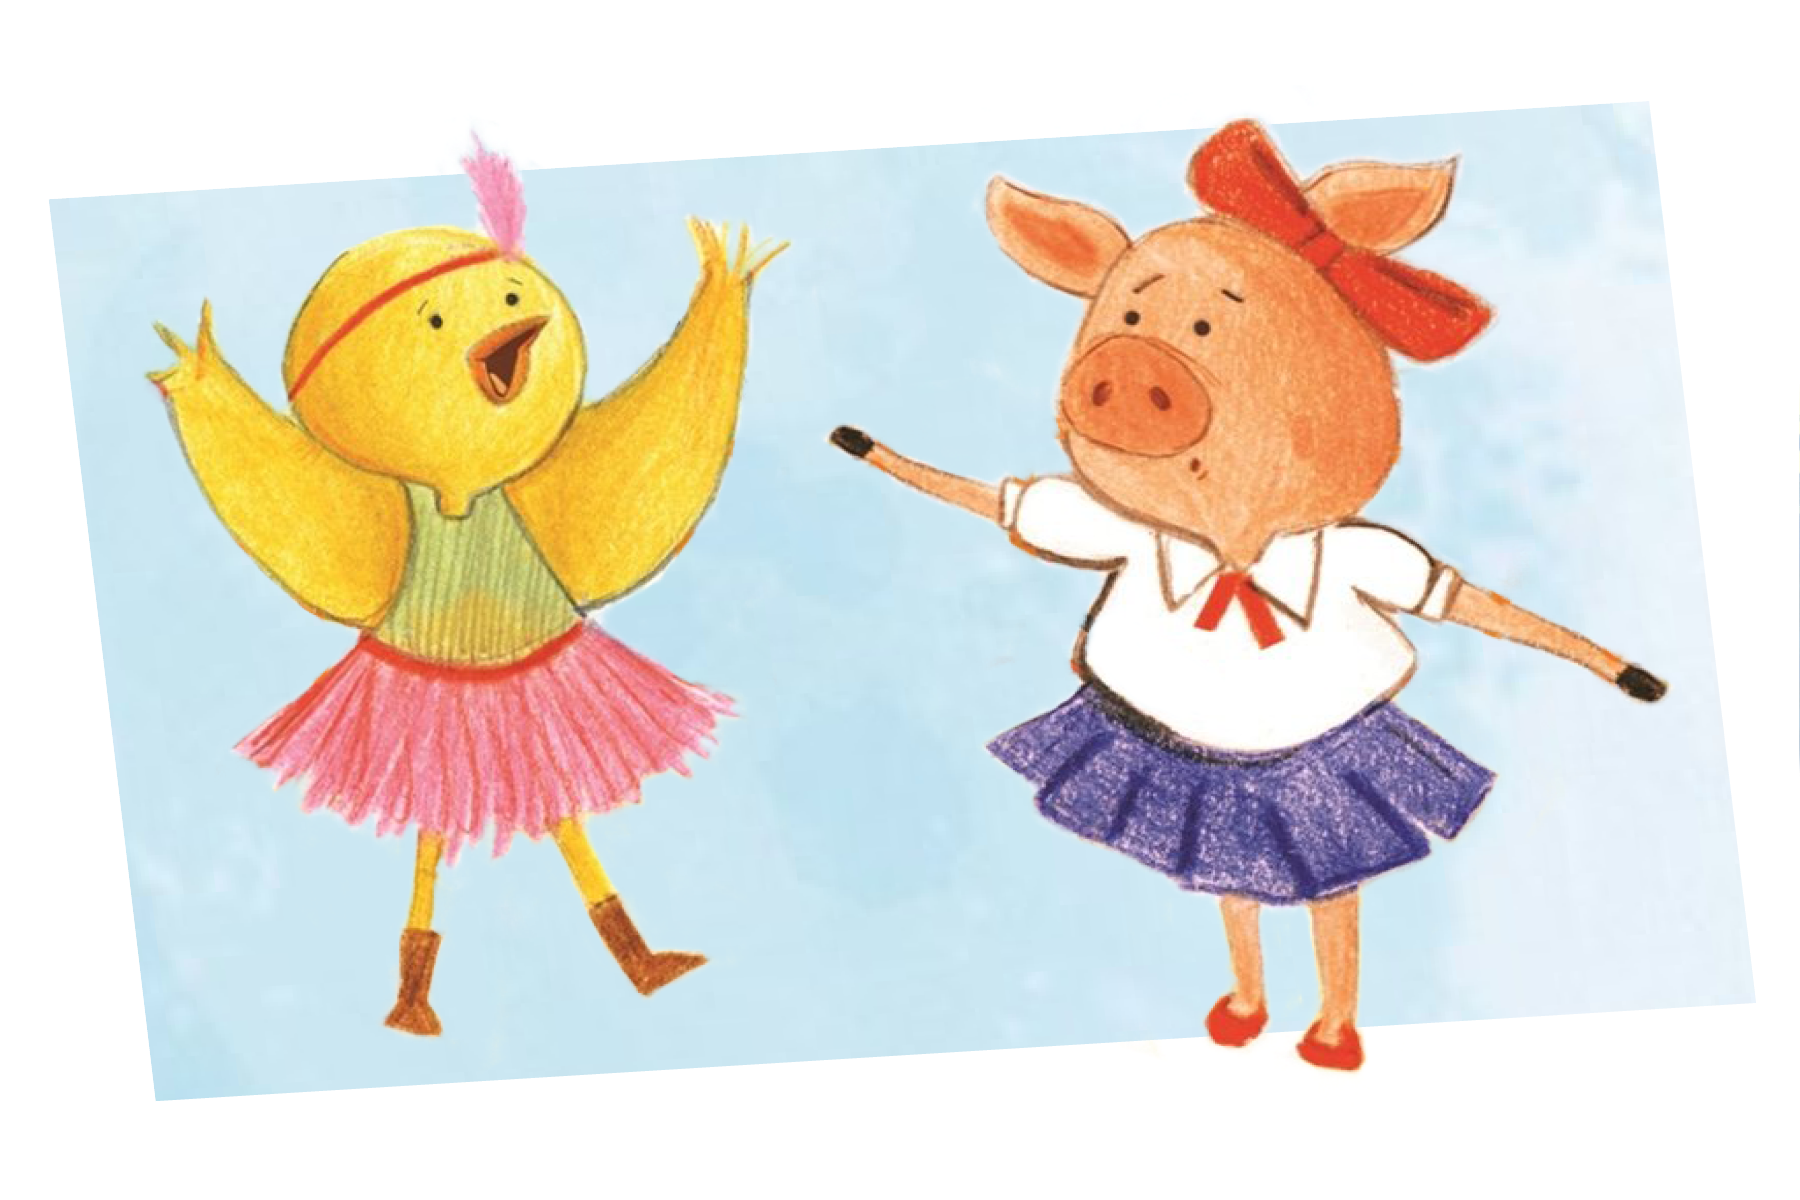 Agnes & Clarabelle - a charming and quirky series